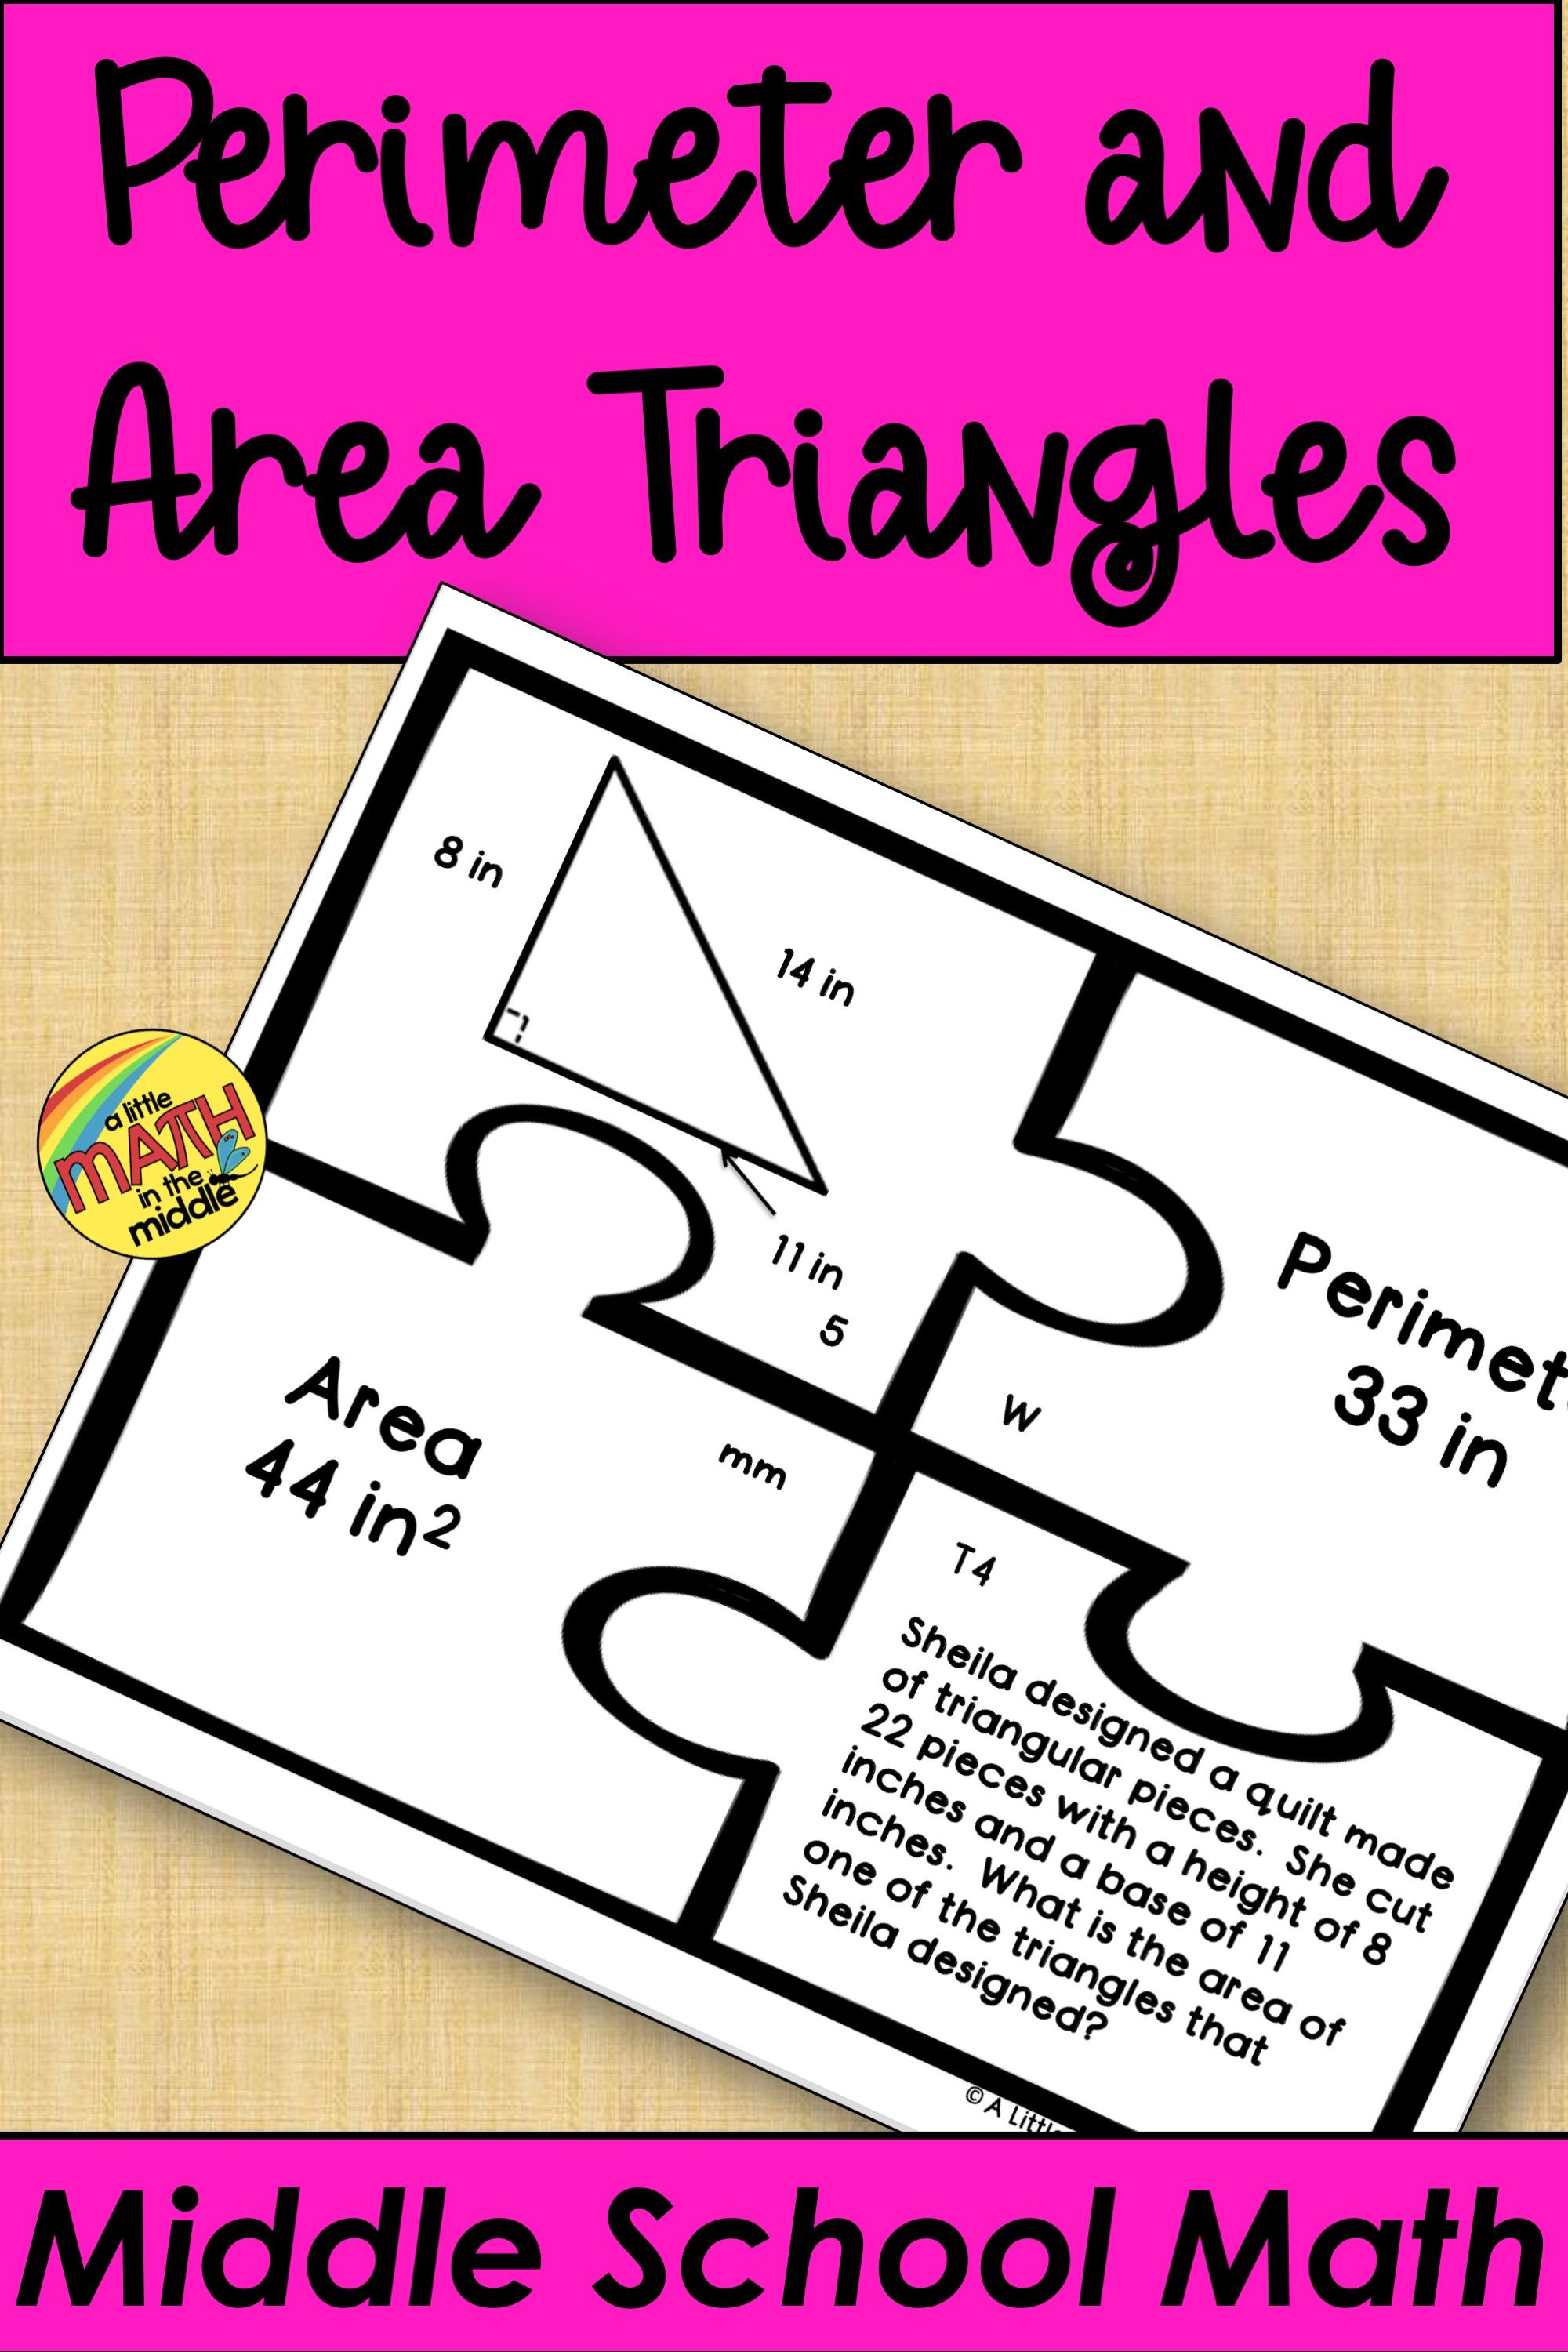 Perimeter And Area Of Triangles In